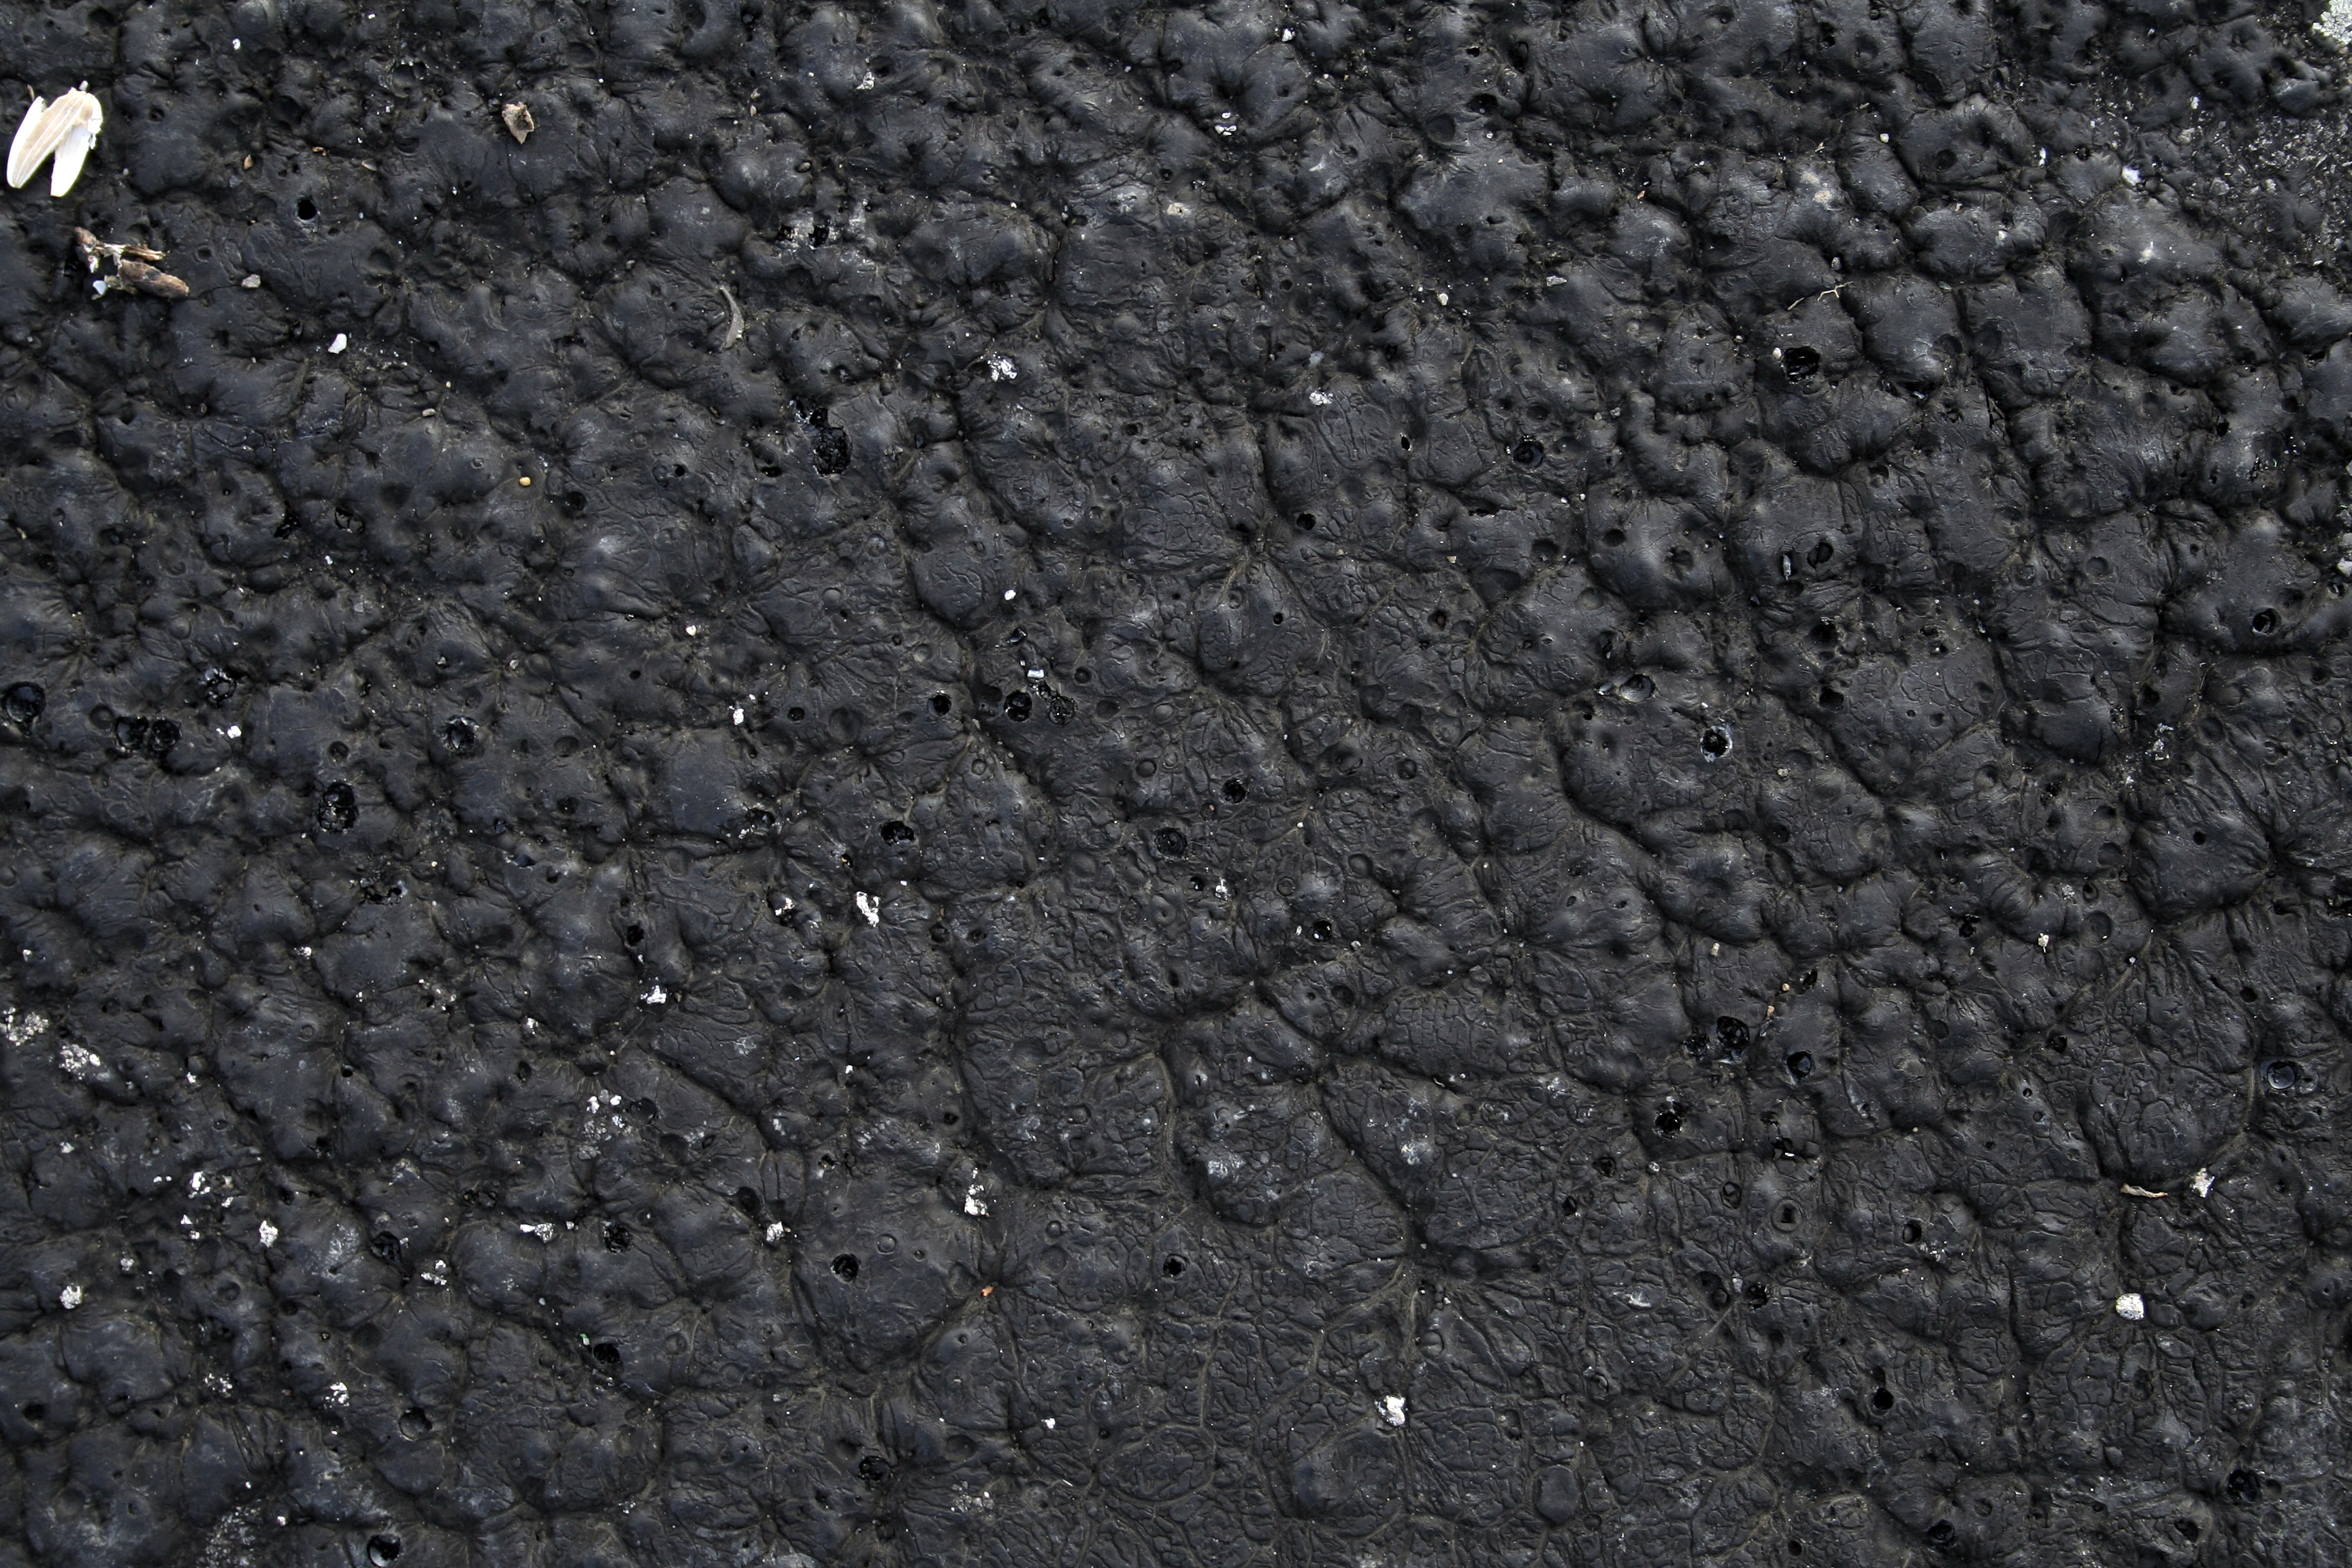 texture asphalt, texture road, asphalt texture background, background, download